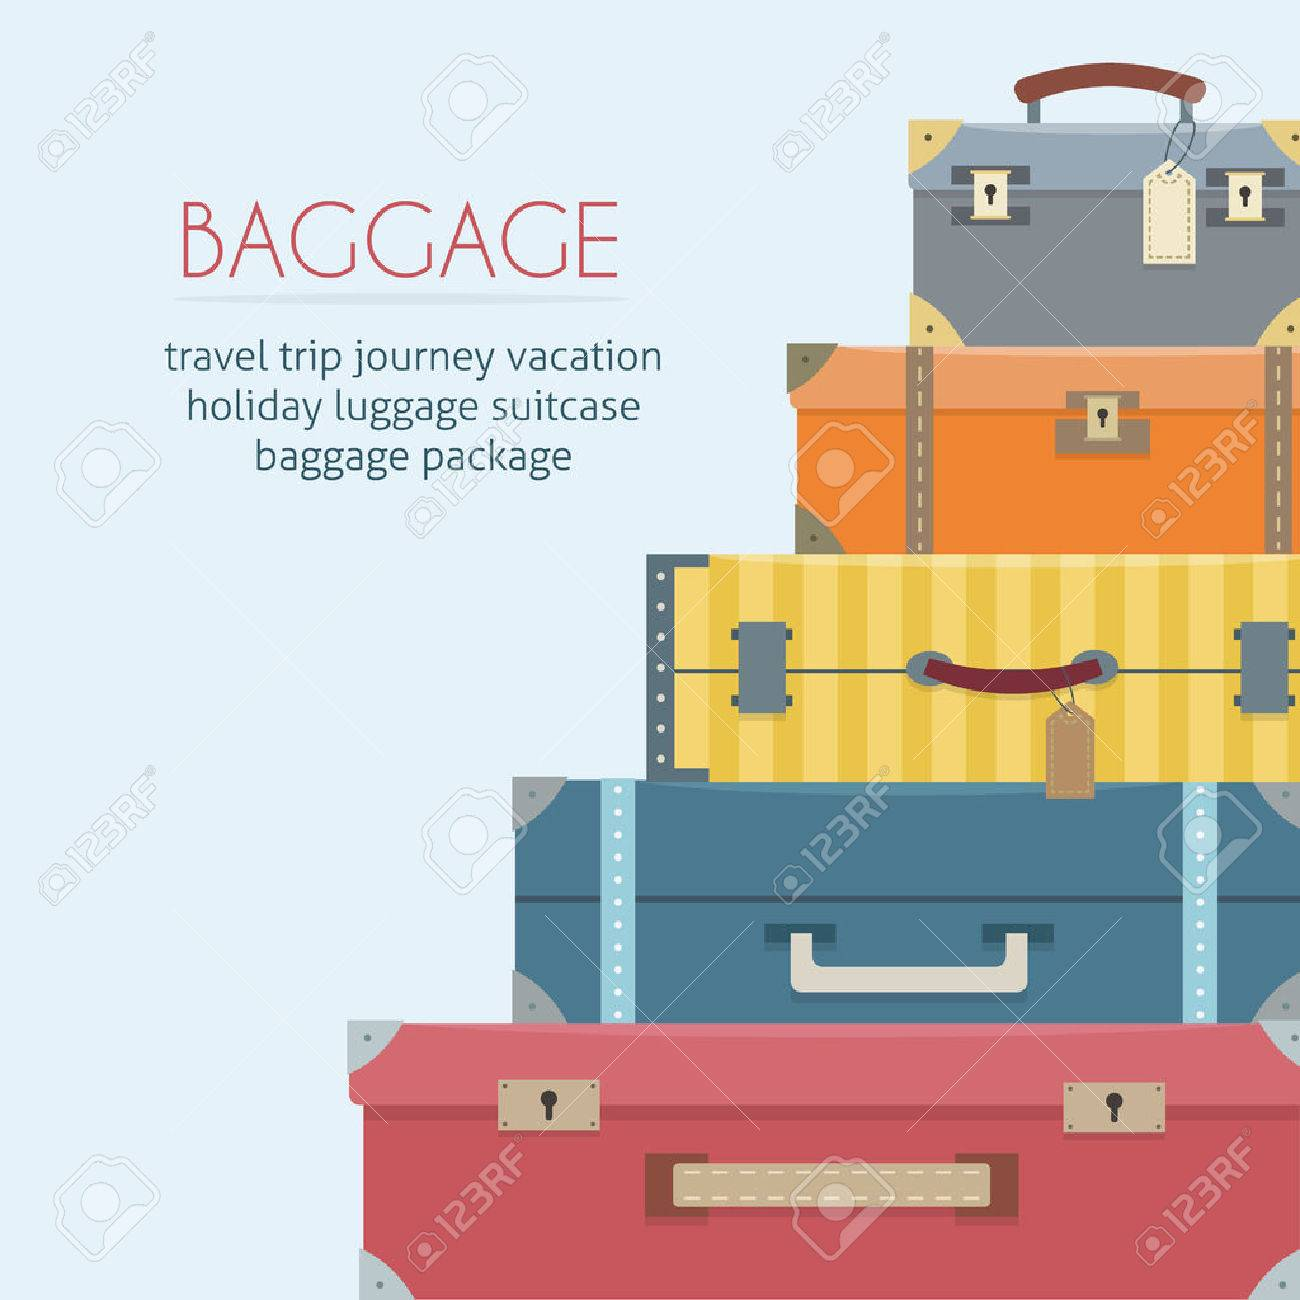 Baggage on background. Flat style vector illustration. - 52617211